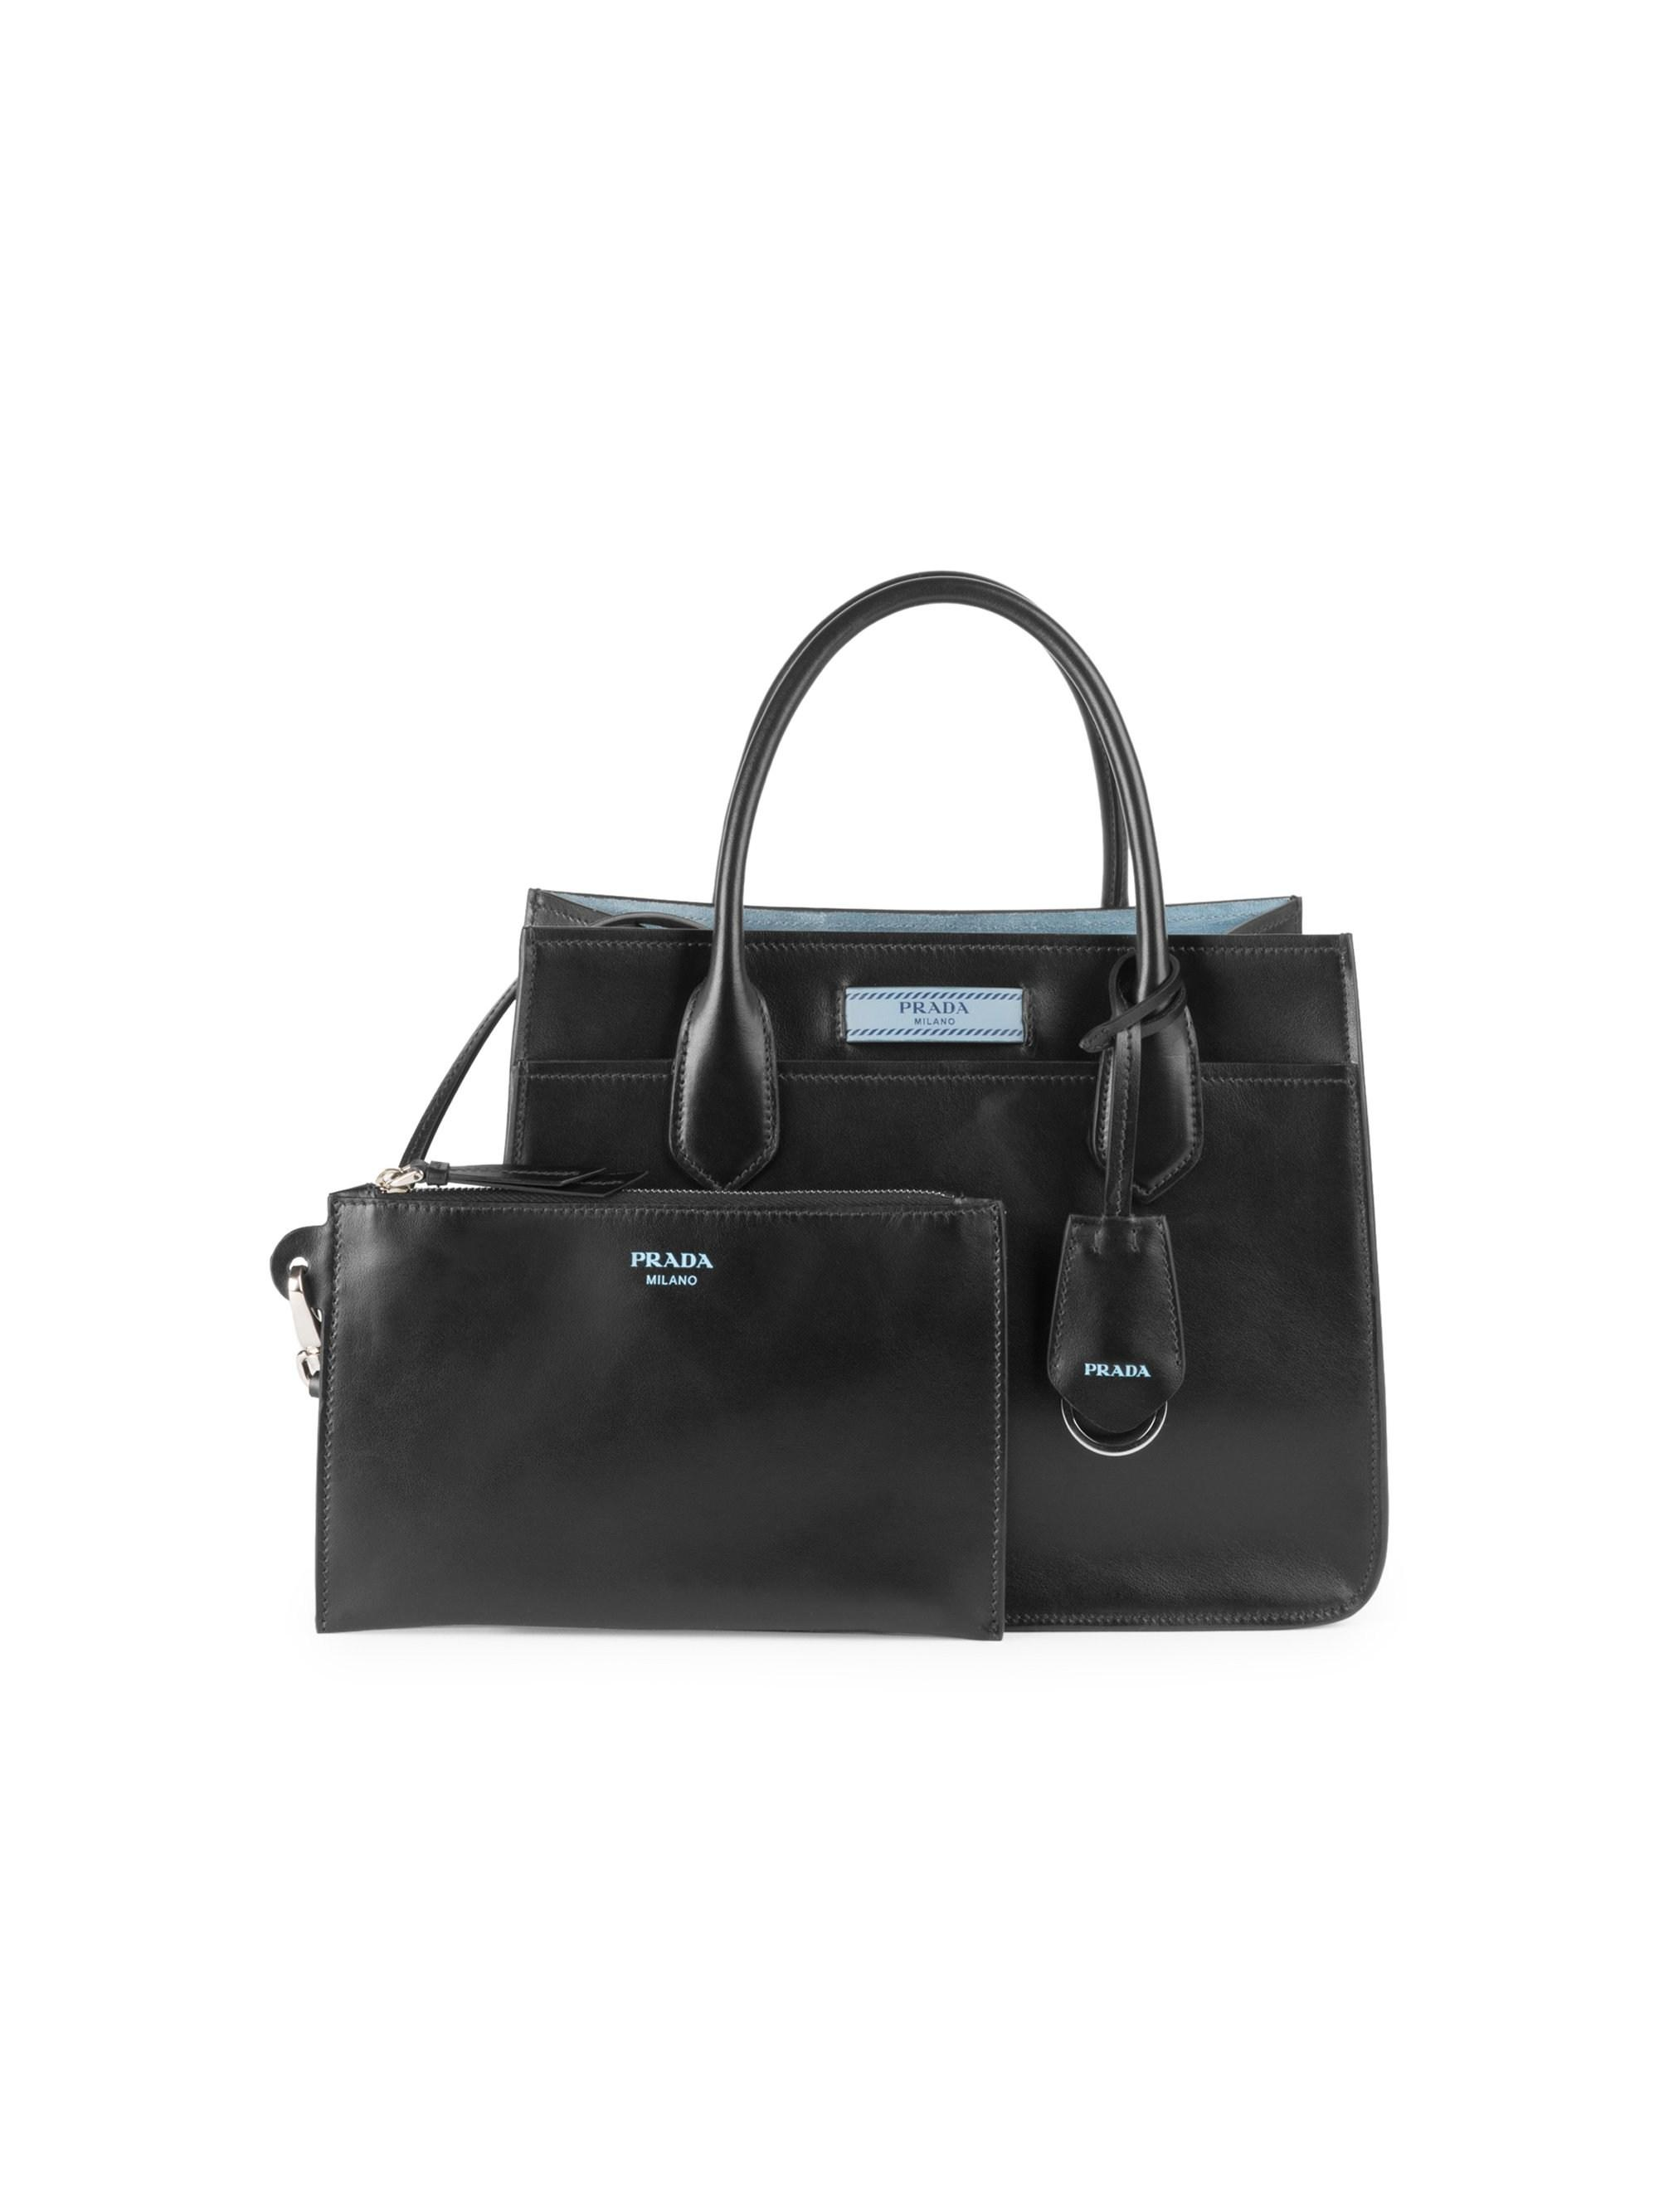 9f29913001a3 Lyst - Prada Small Leather Dual Tote in Black